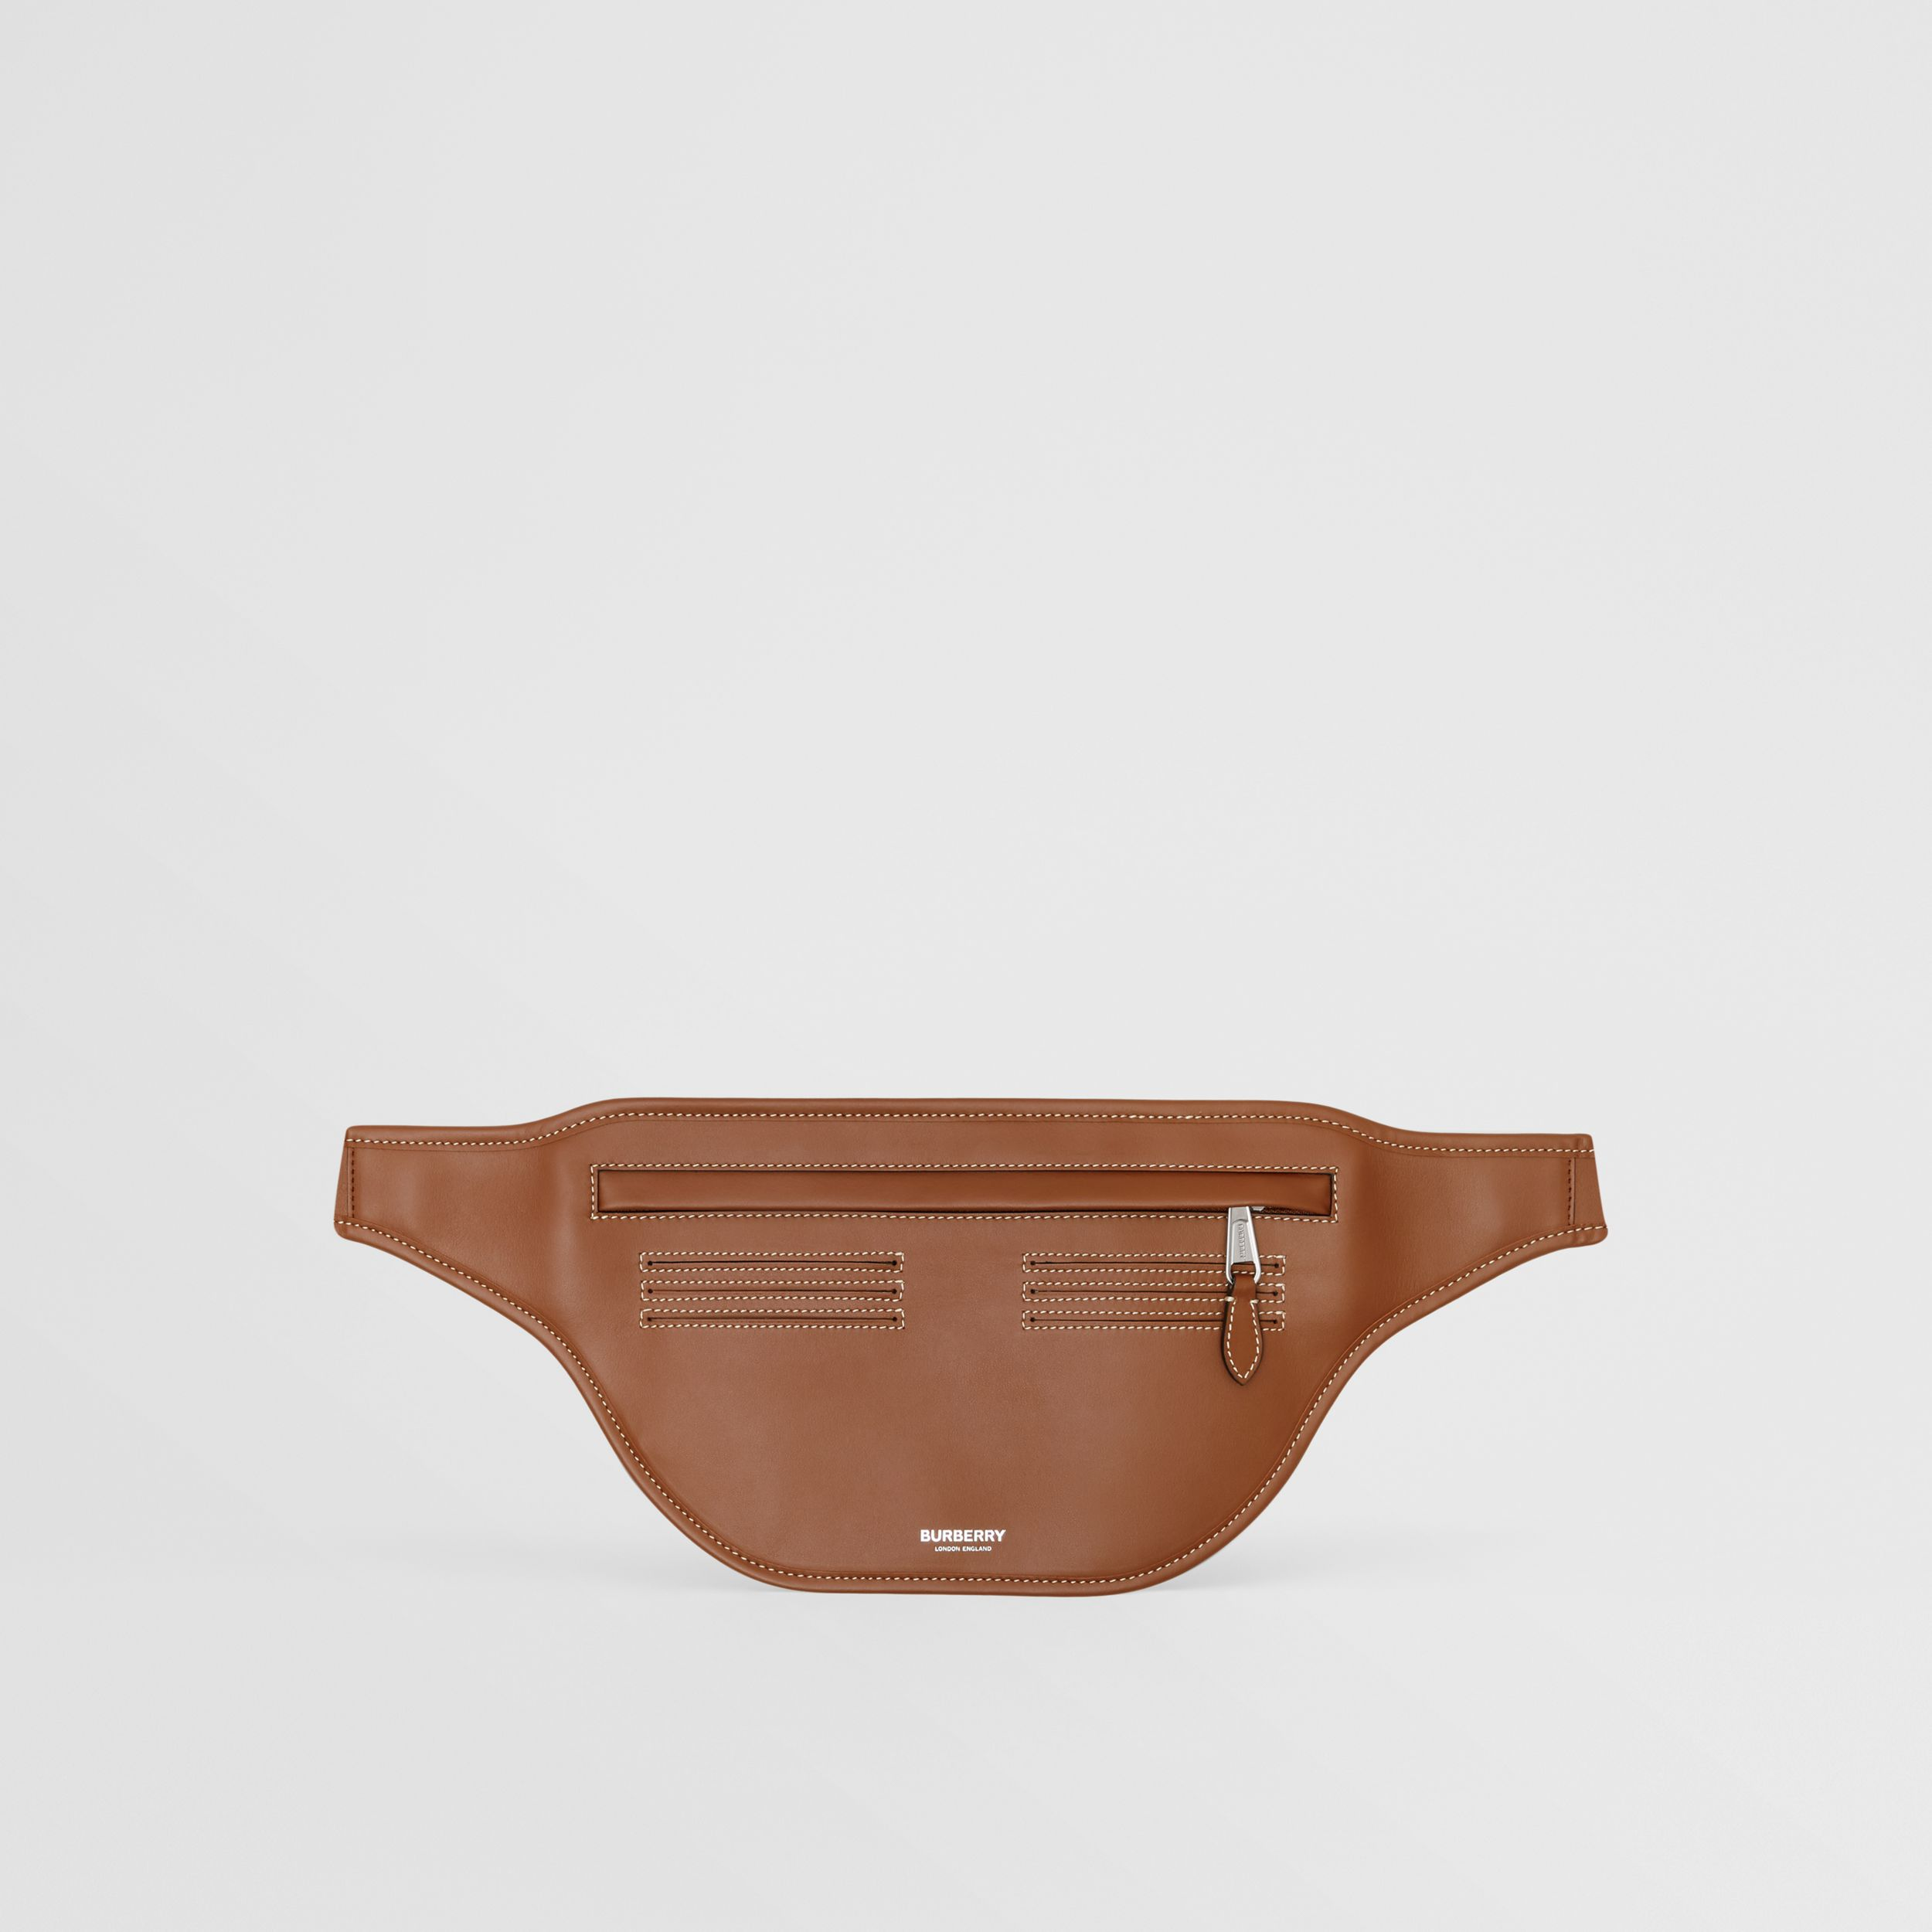 Topstitched Leather Brummell Bum Bag in Tan | Burberry - 1